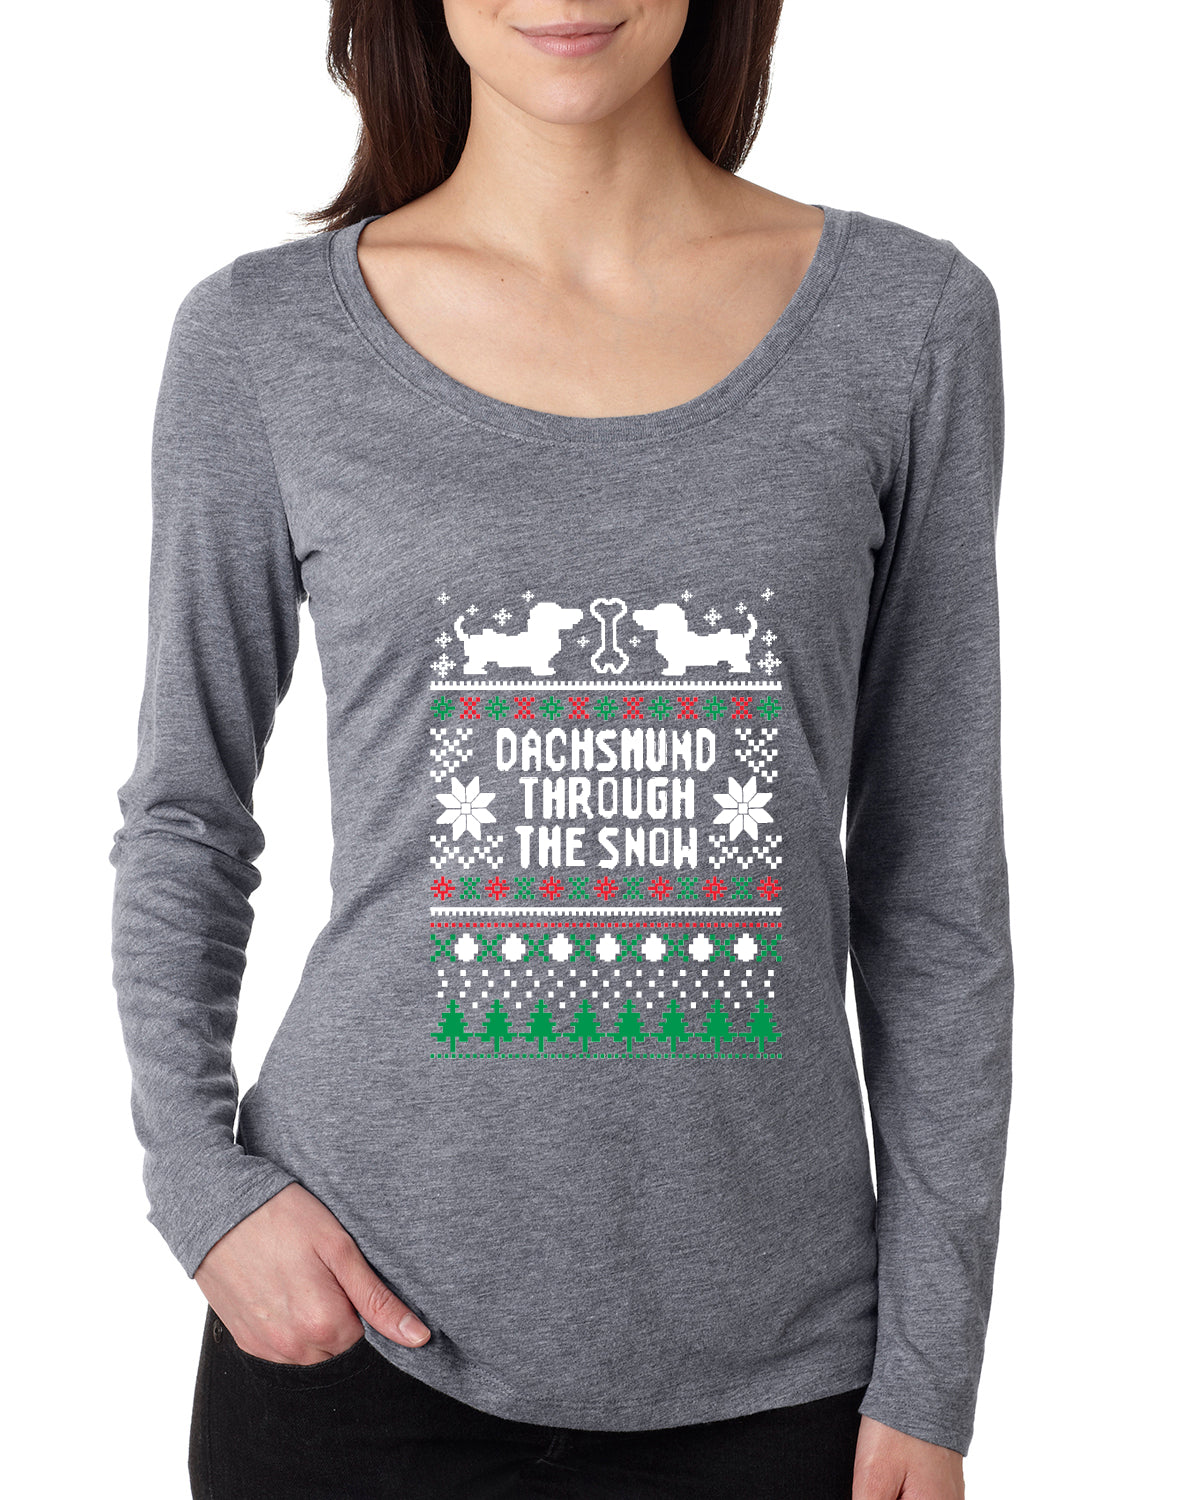 Daschund Through The Snow Christmas Womens Scoop Long Sleeve Top